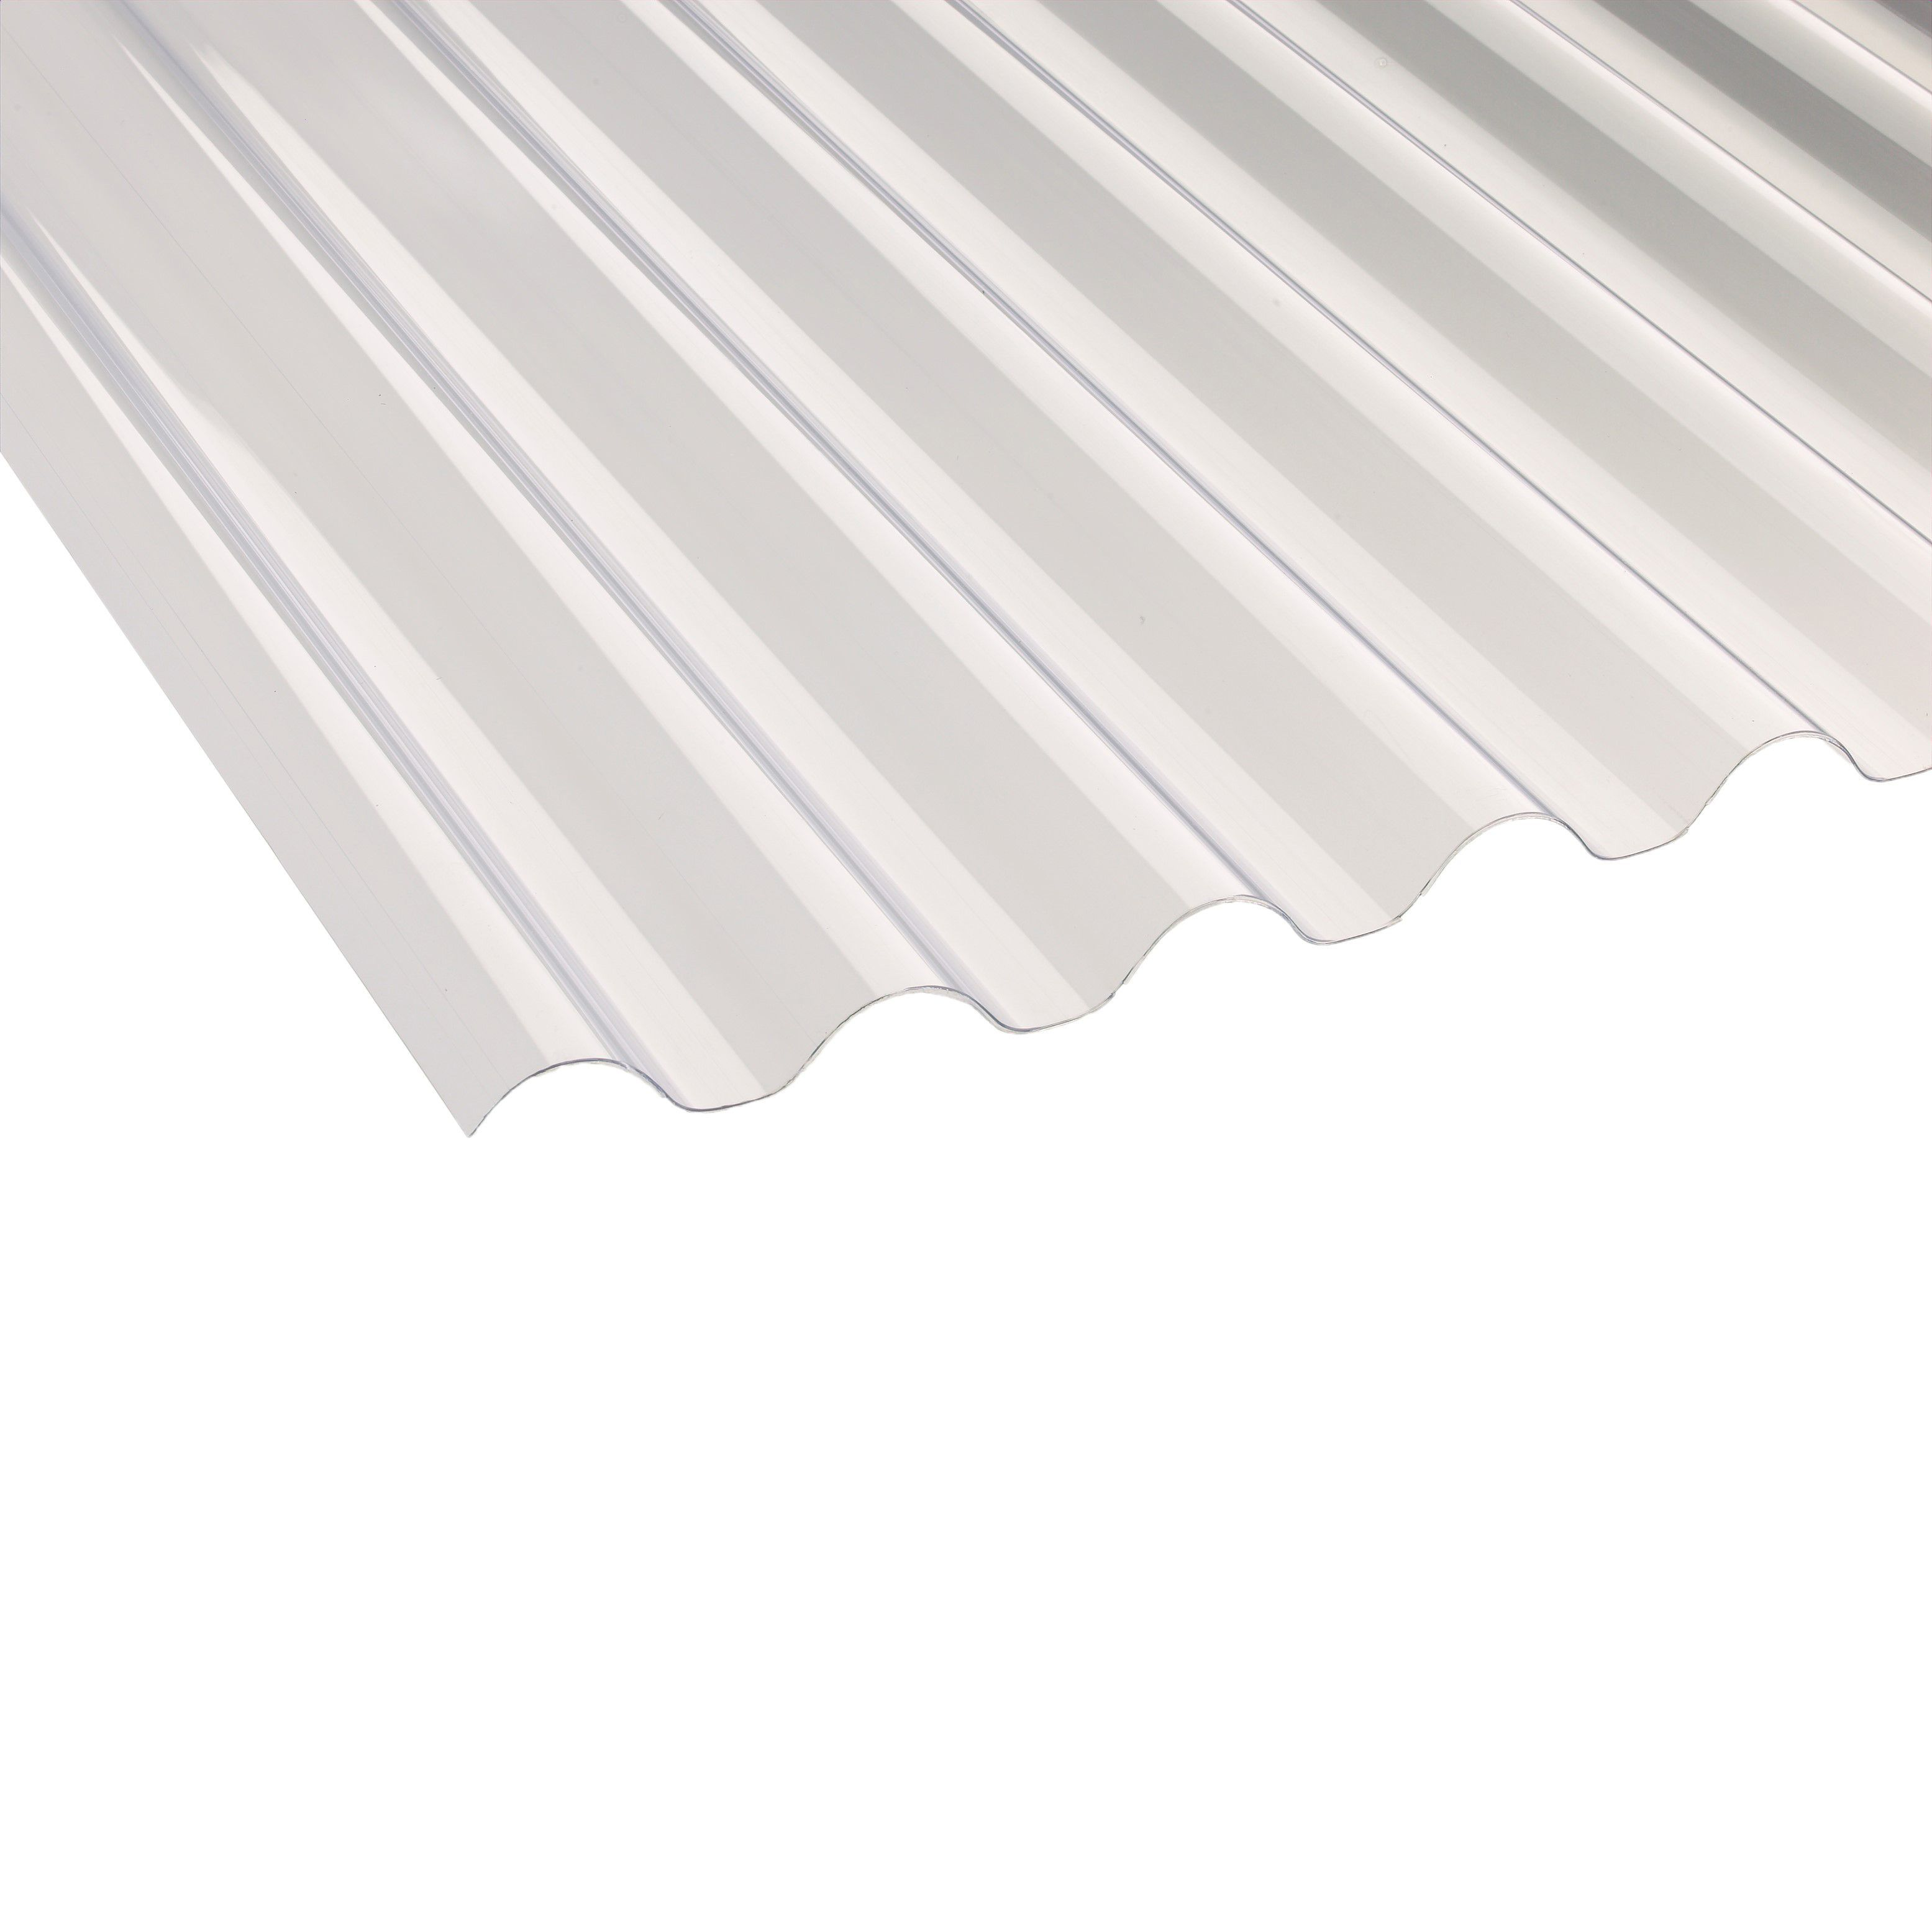 Clear Corrugated Pvc Roofing Sheet 3000mm X 660mm, Pack Of 10